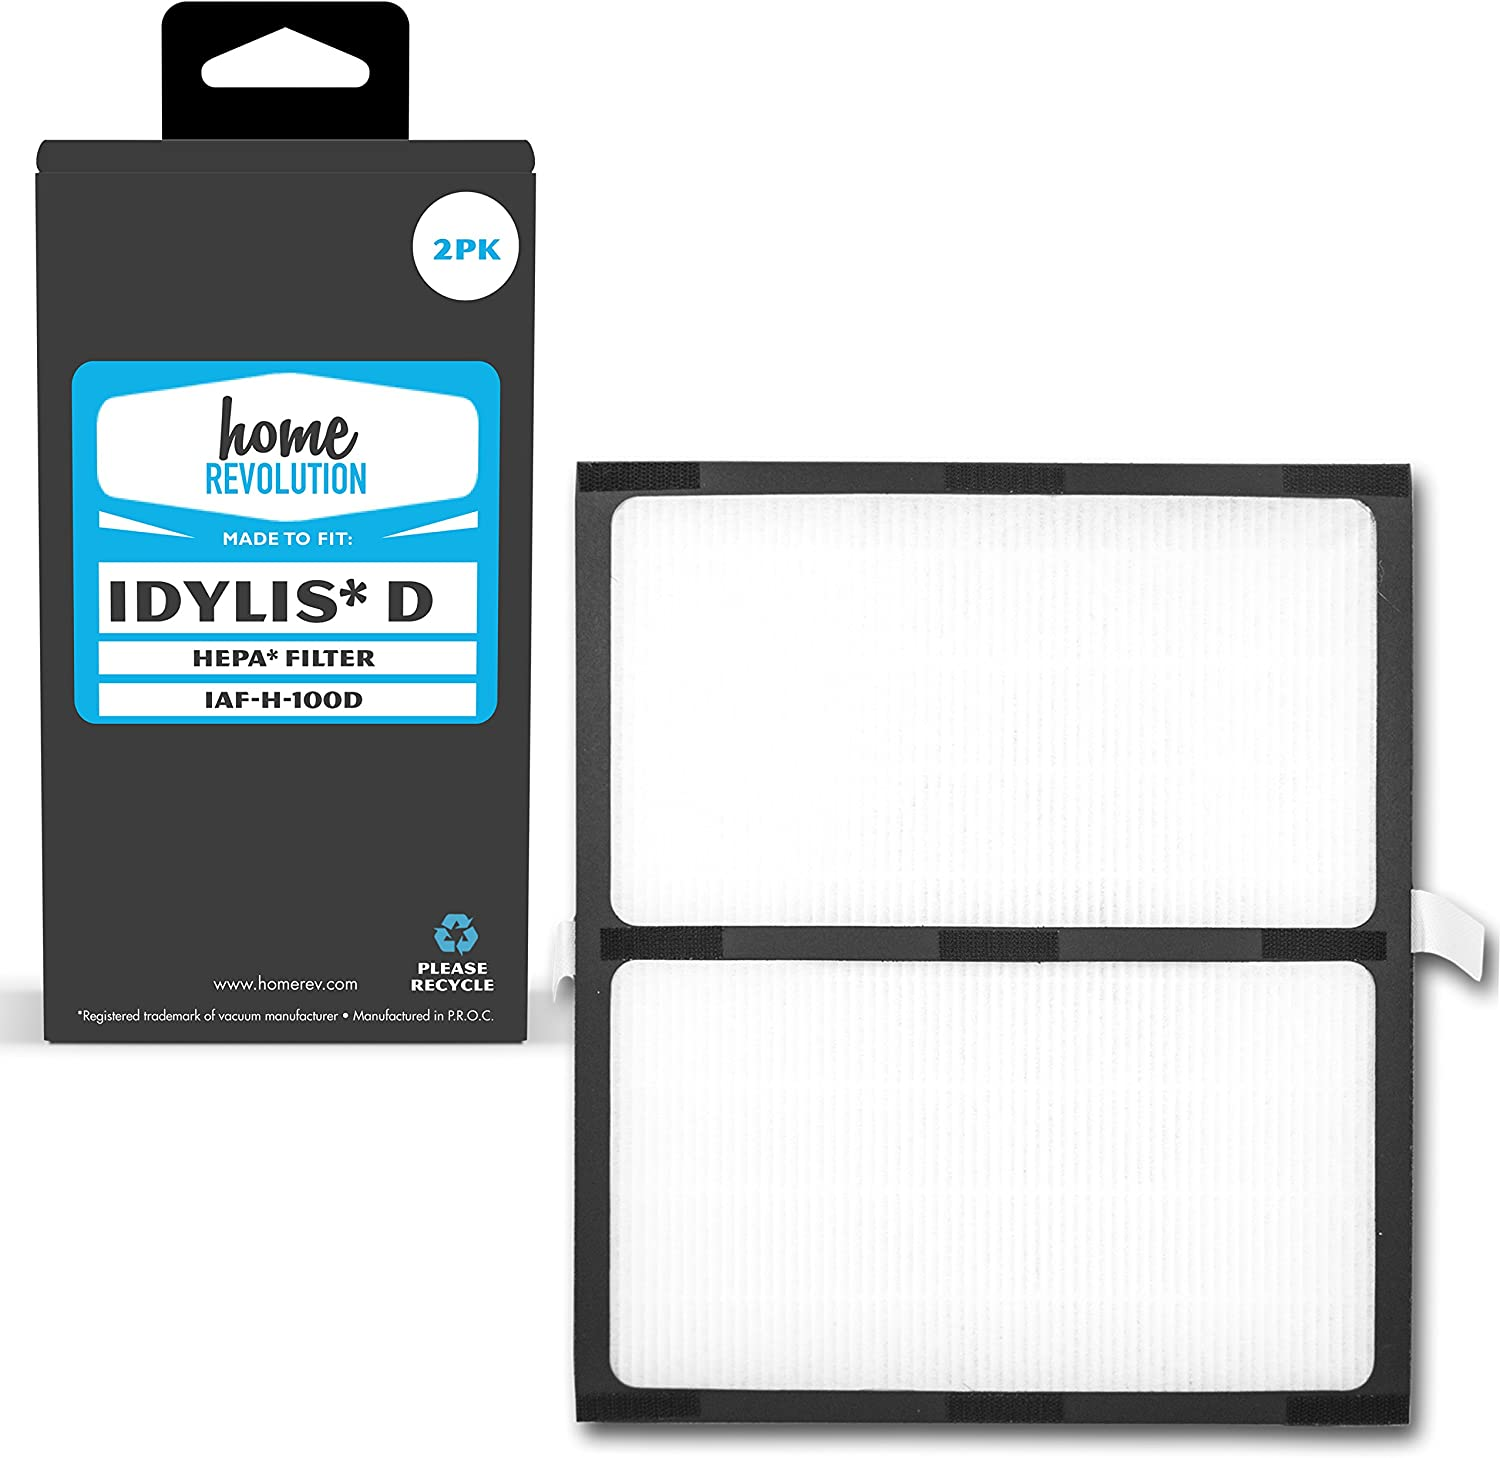 Home Revolution 2 Replacement HEPA Filters, Fits Idylis IAP-10-280 Air Purifiers and Type D Part IAF-H-100D